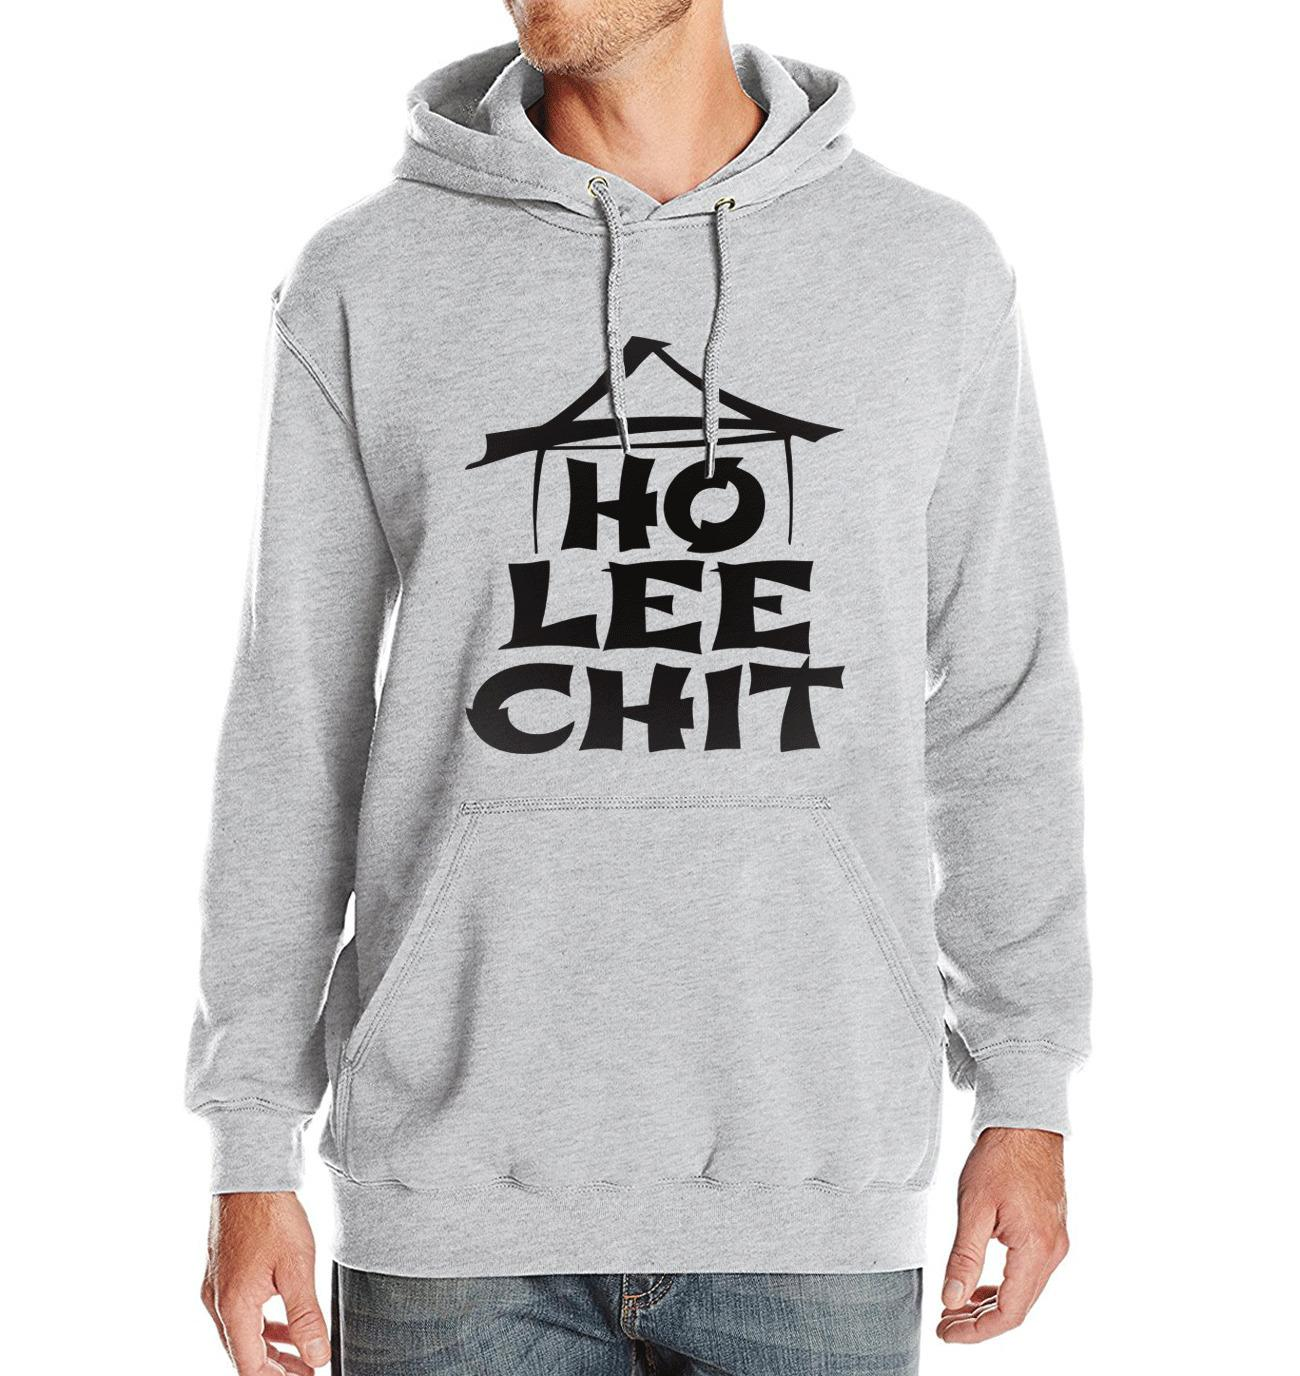 2019 Spring Winter Hoody Fleece High Quality Sweatshirts With Hat Ho Lee Chit Holy Sh*t Fashion Streetwear Hip Hop Mens Hoodie